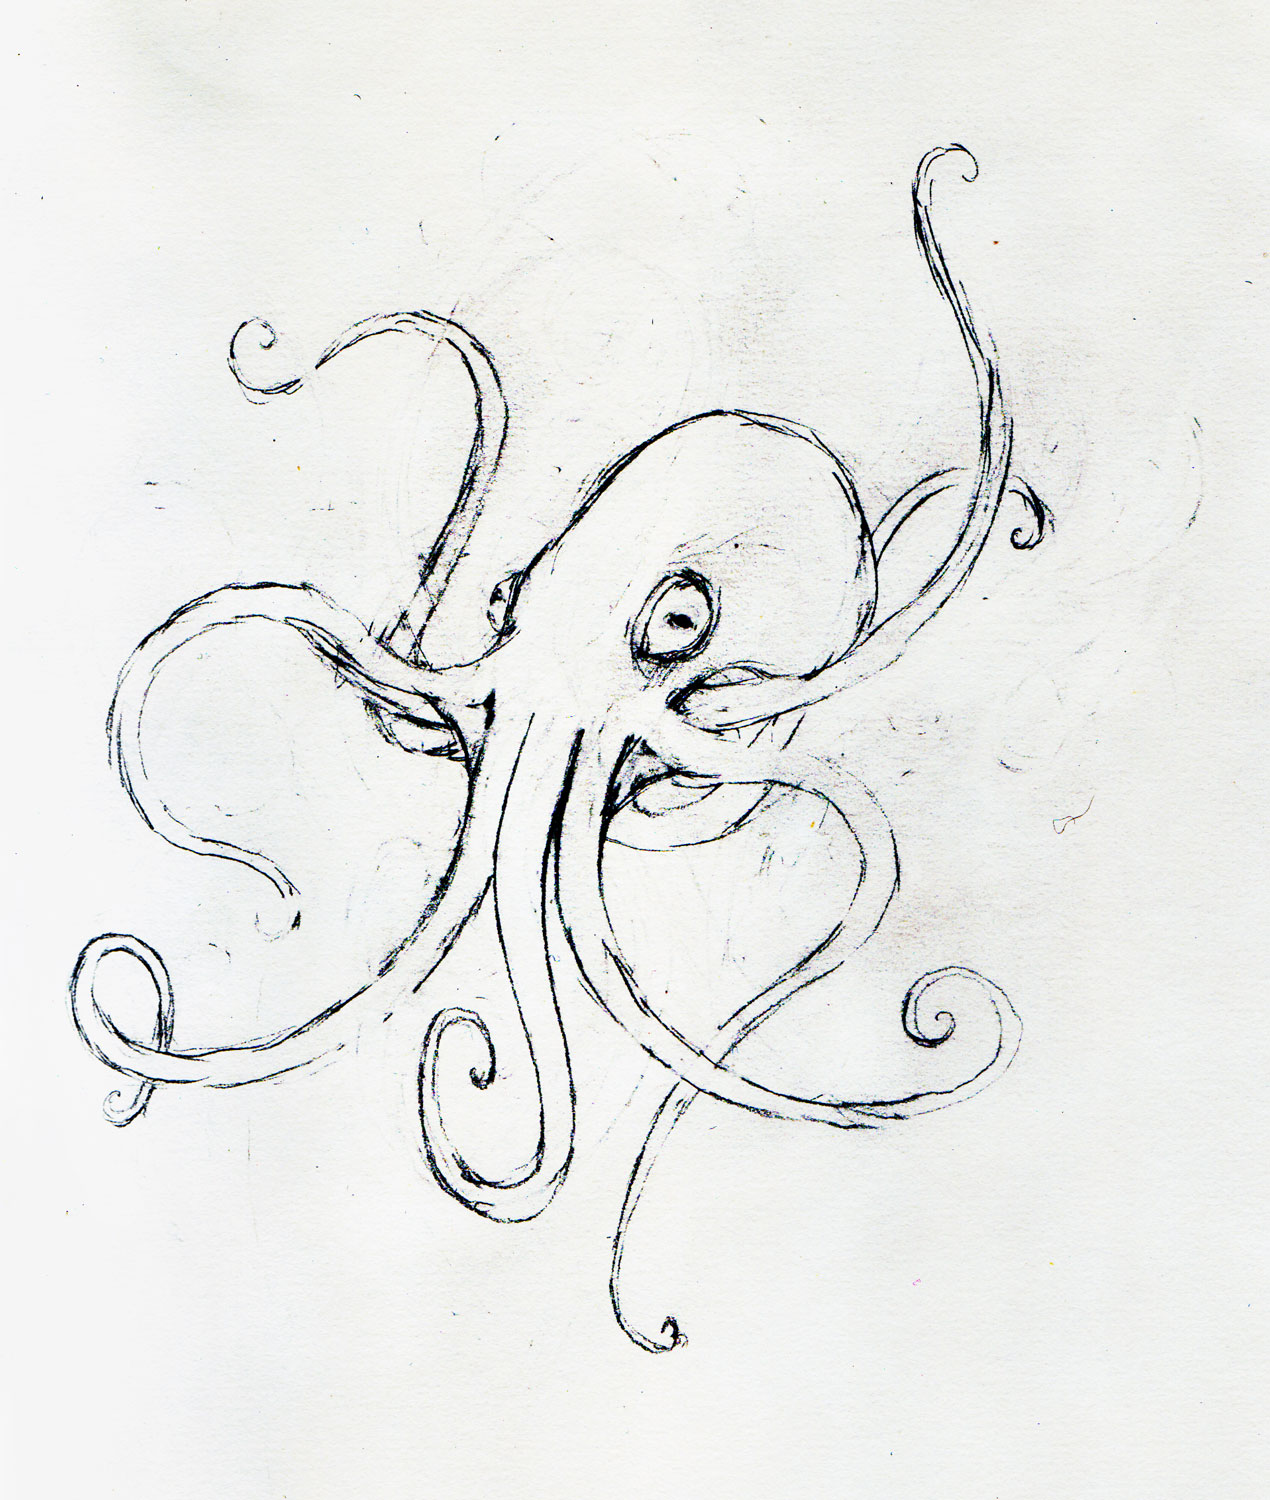 octopus sketch leeviathan